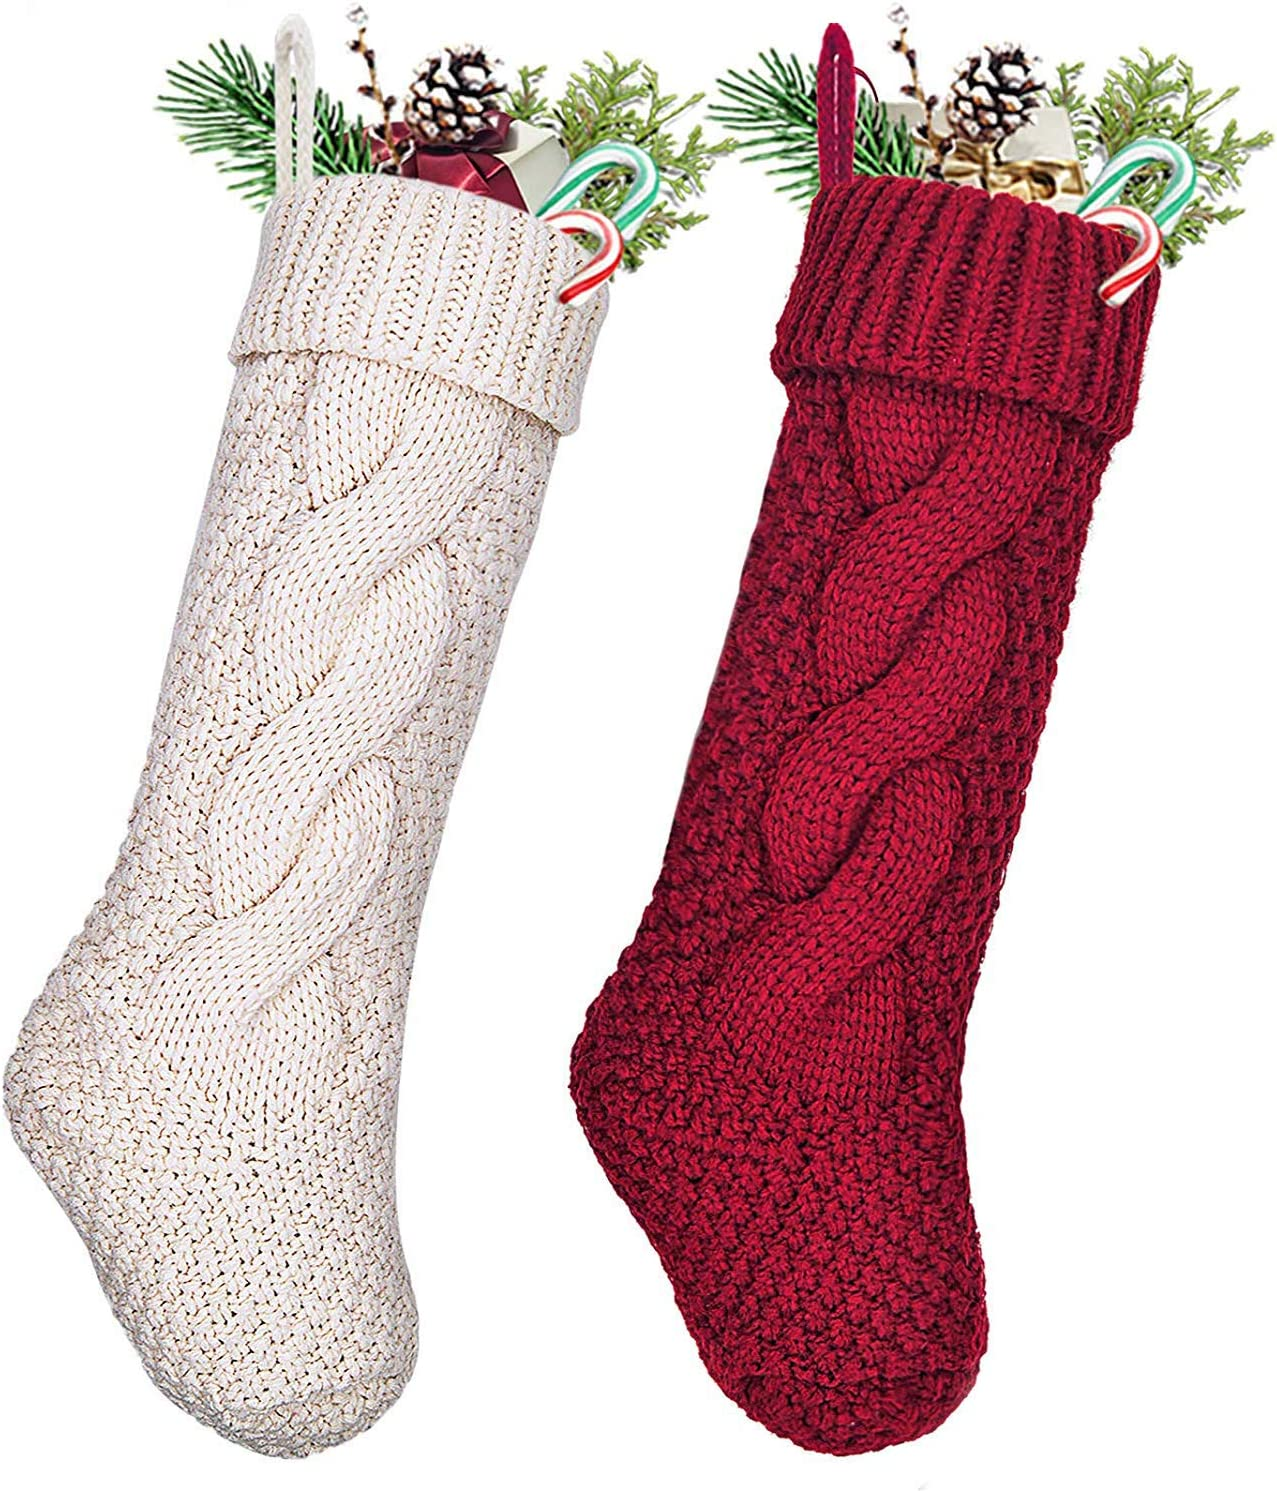 UNIQUEED Cable Knit Christmas Stockings,2 Pack 18 inches Large Size Cable Knit Knitted Stockings,Xmas Rustic Stocking Decorations,Cream or Burgundy Cream and Burgundy